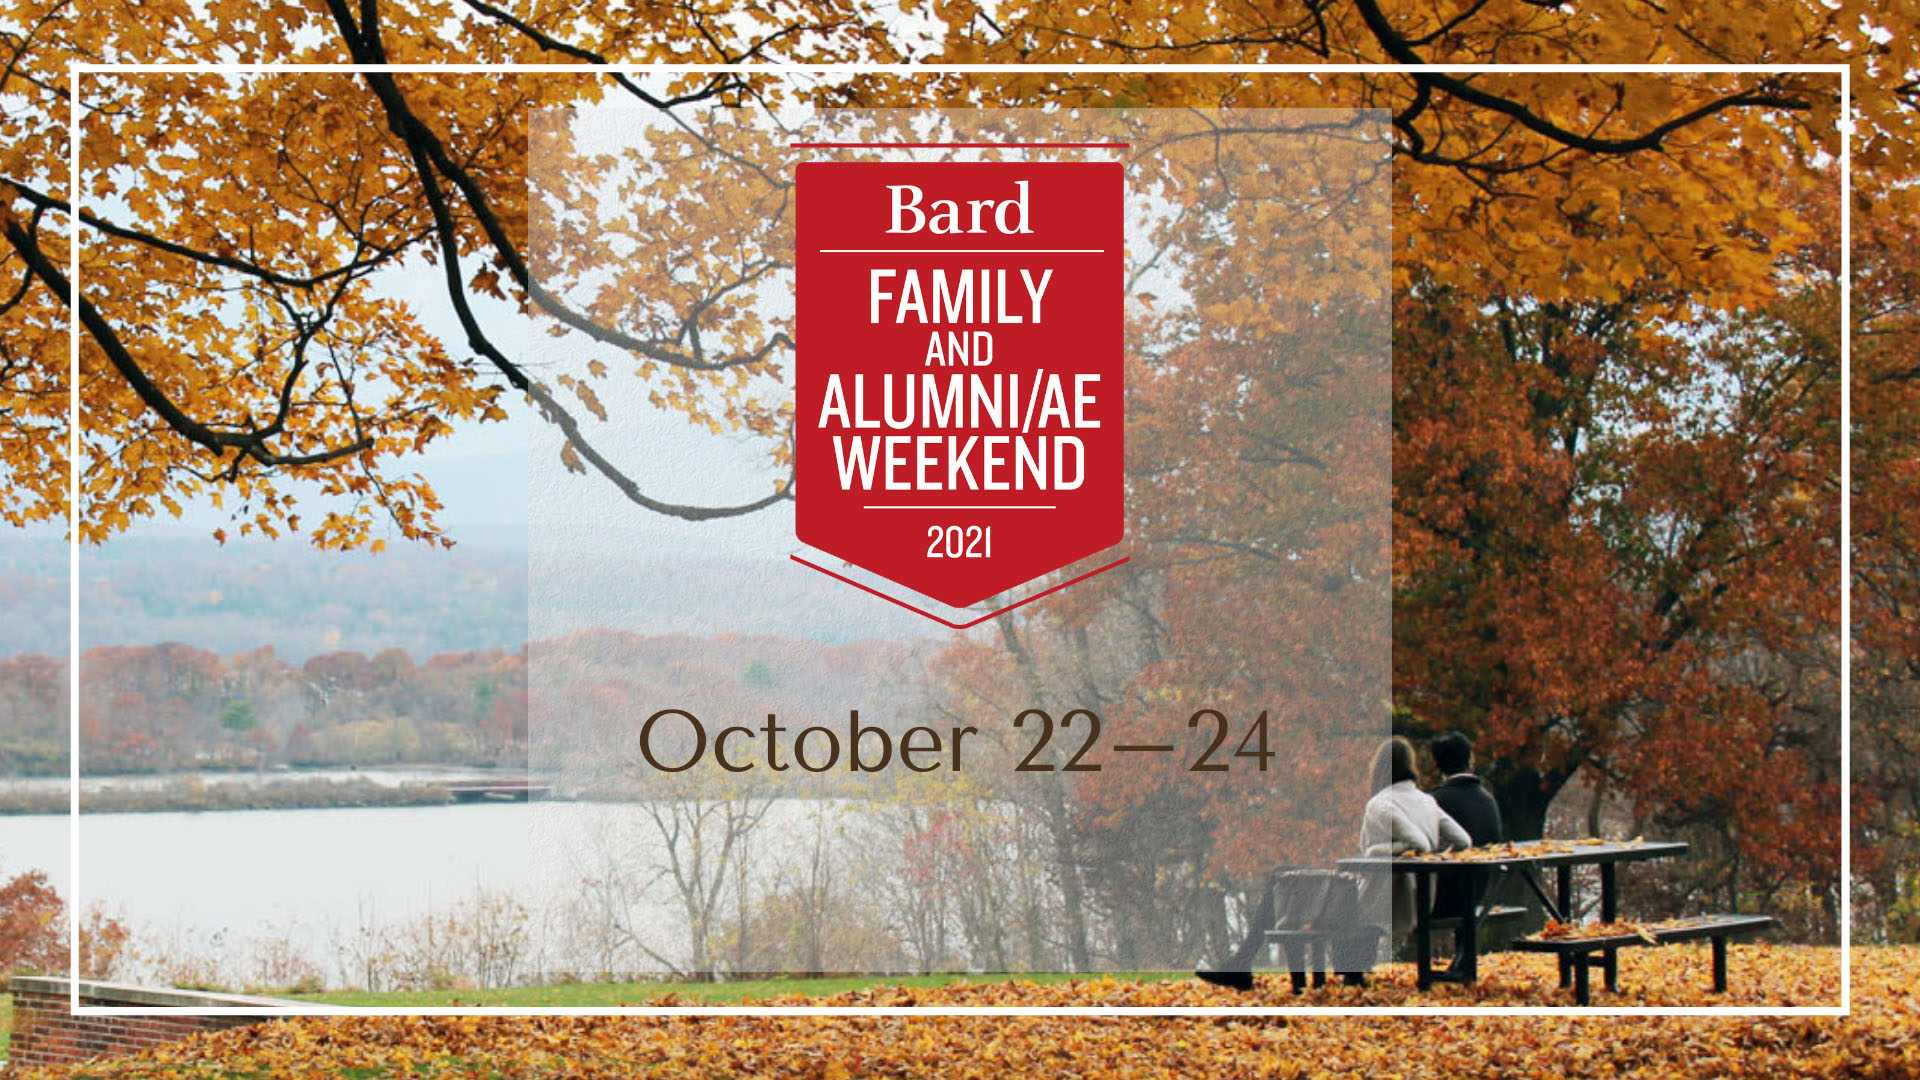 [Family and Alumni/ae Weekend]